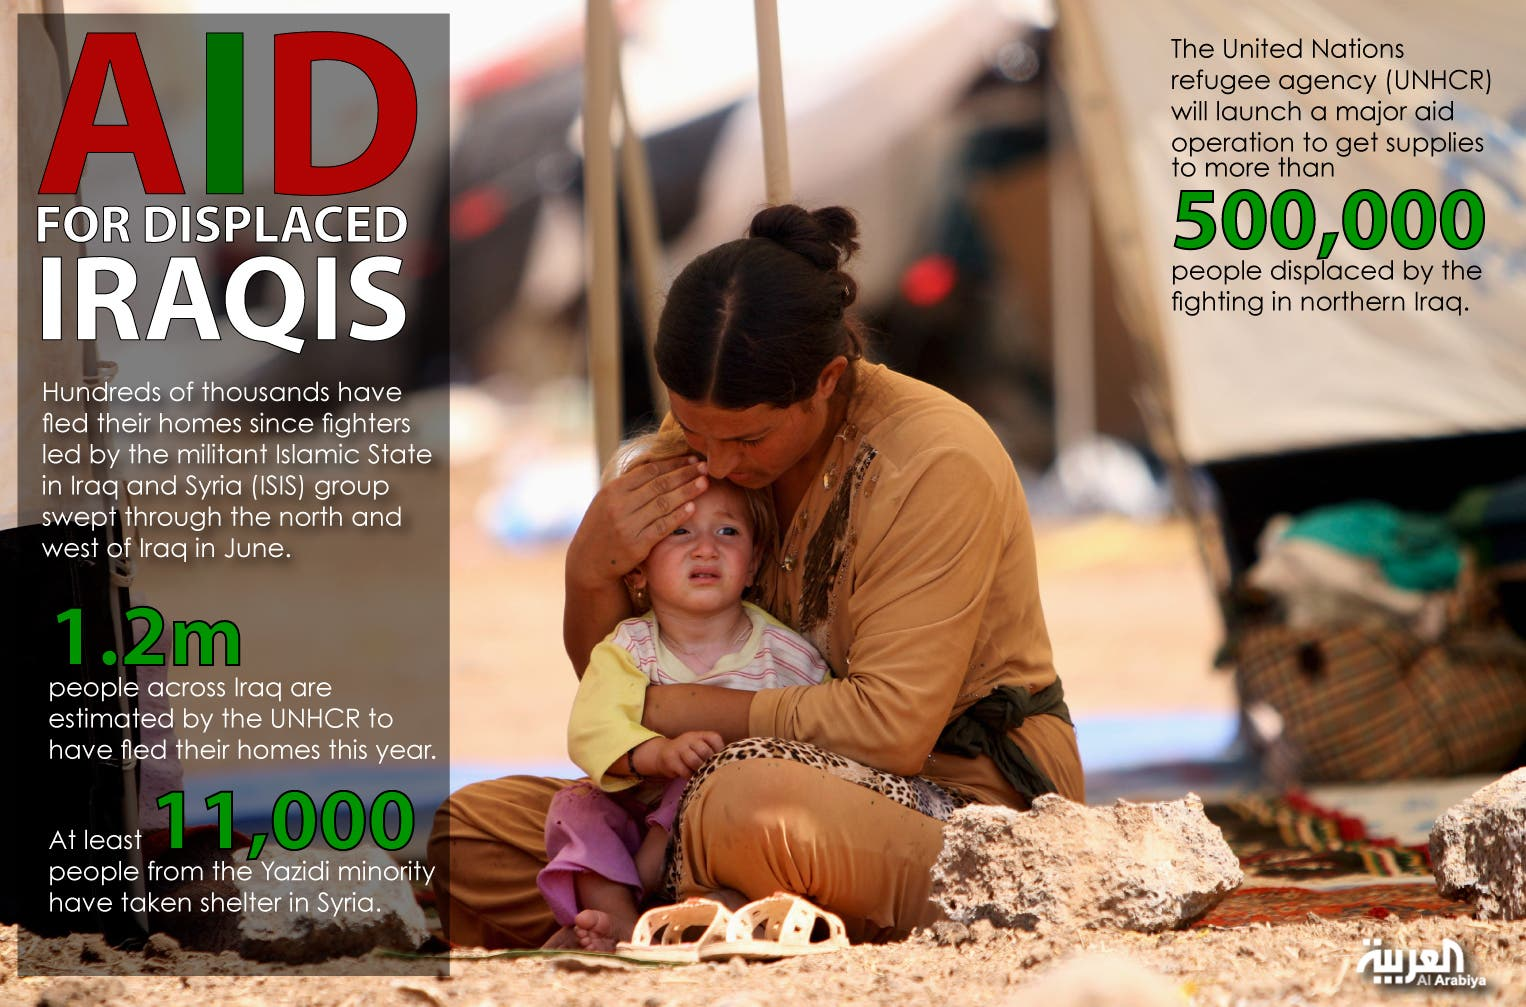 Infographic: Aid for displaced Iraqis